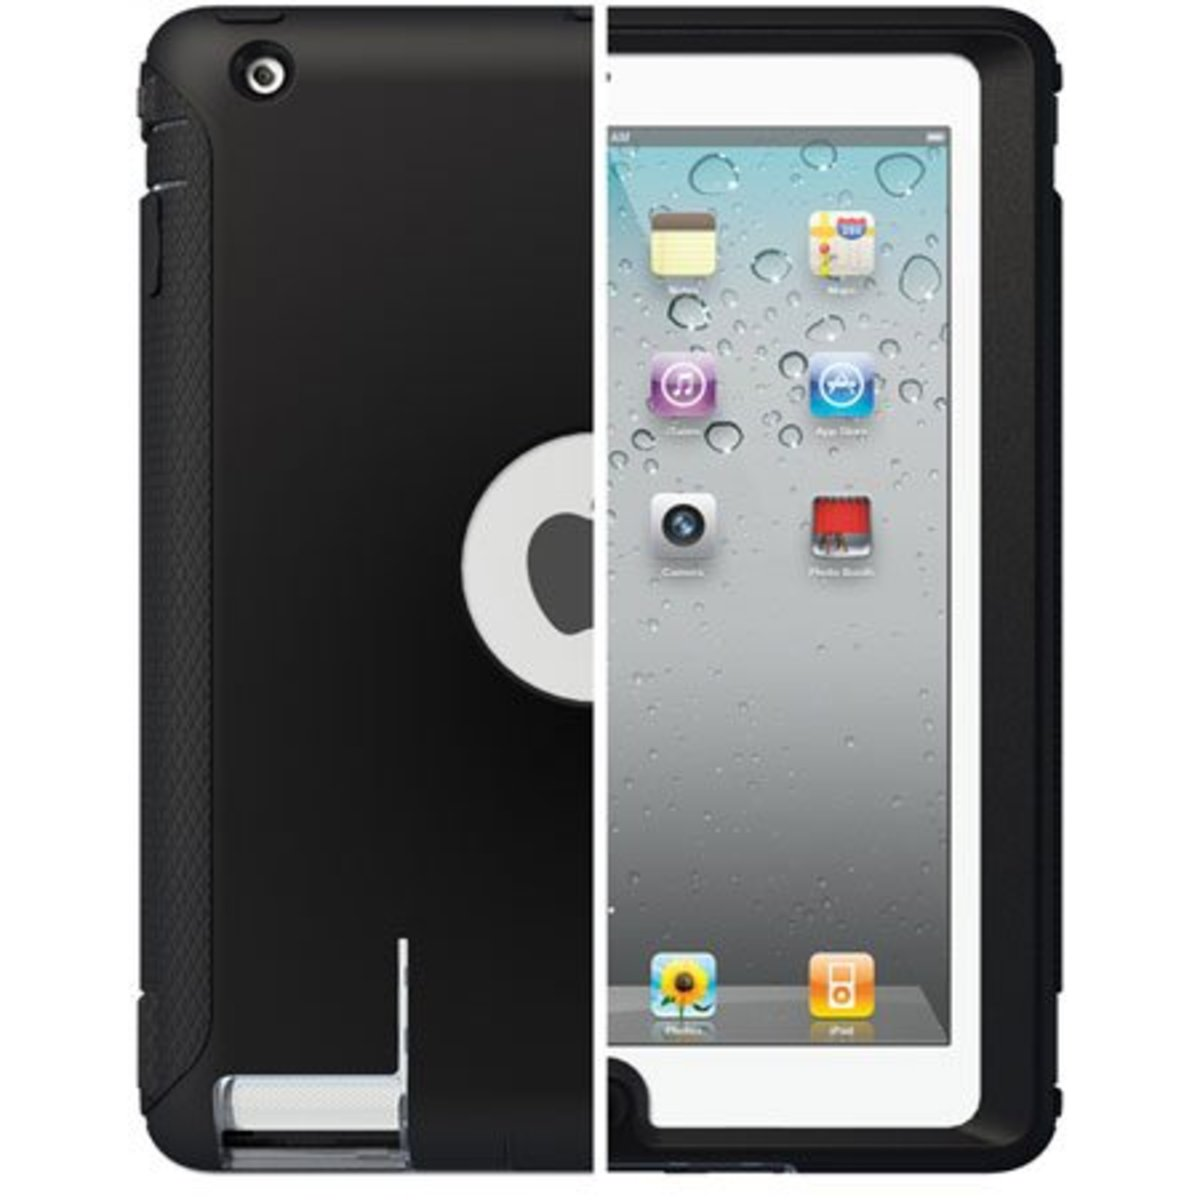 The OtterBox Defender for the iPad can extend the life of your device.